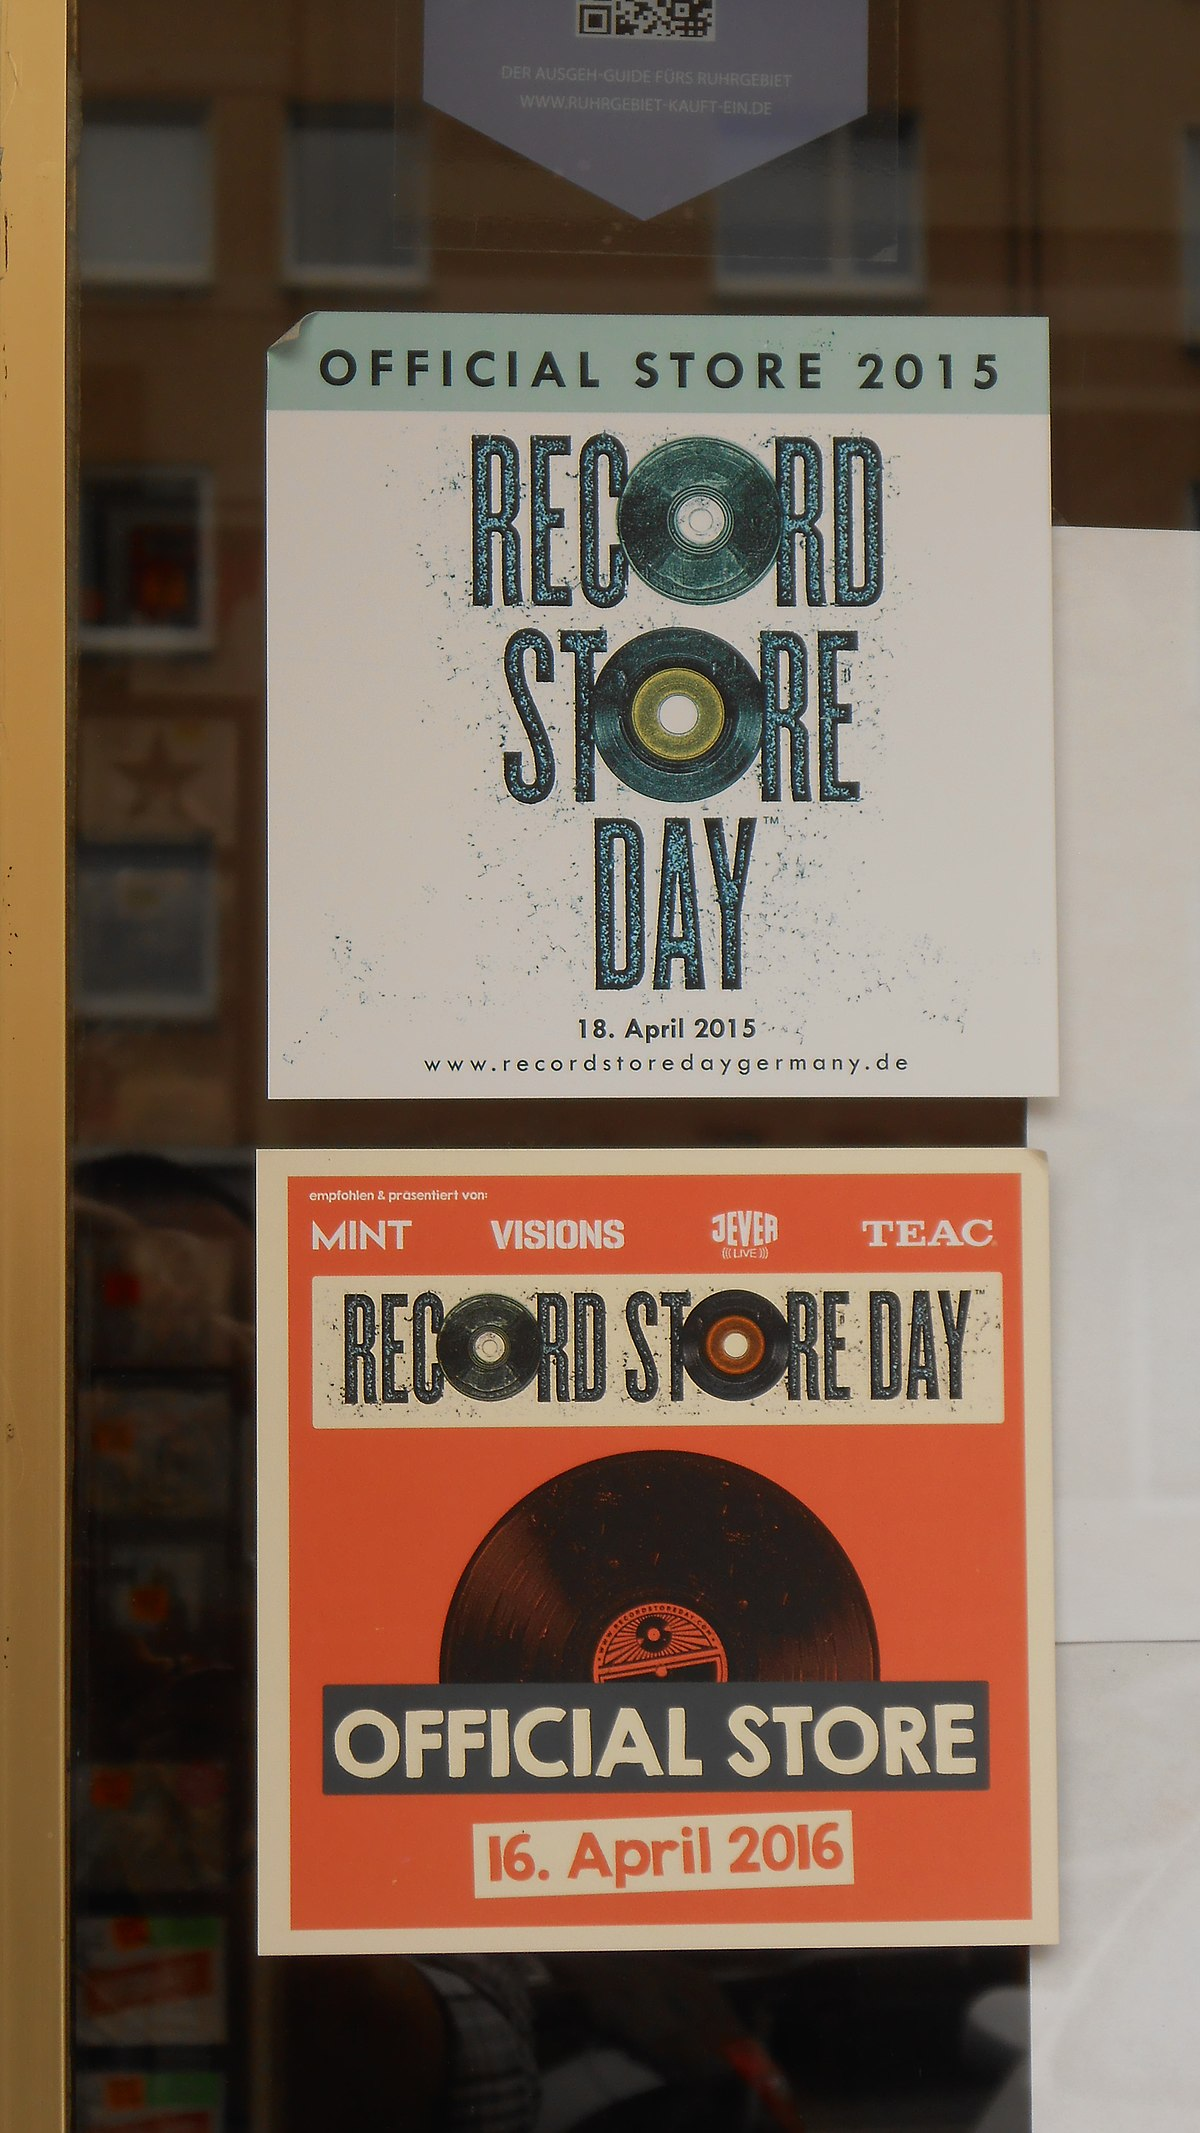 Record store day freebies